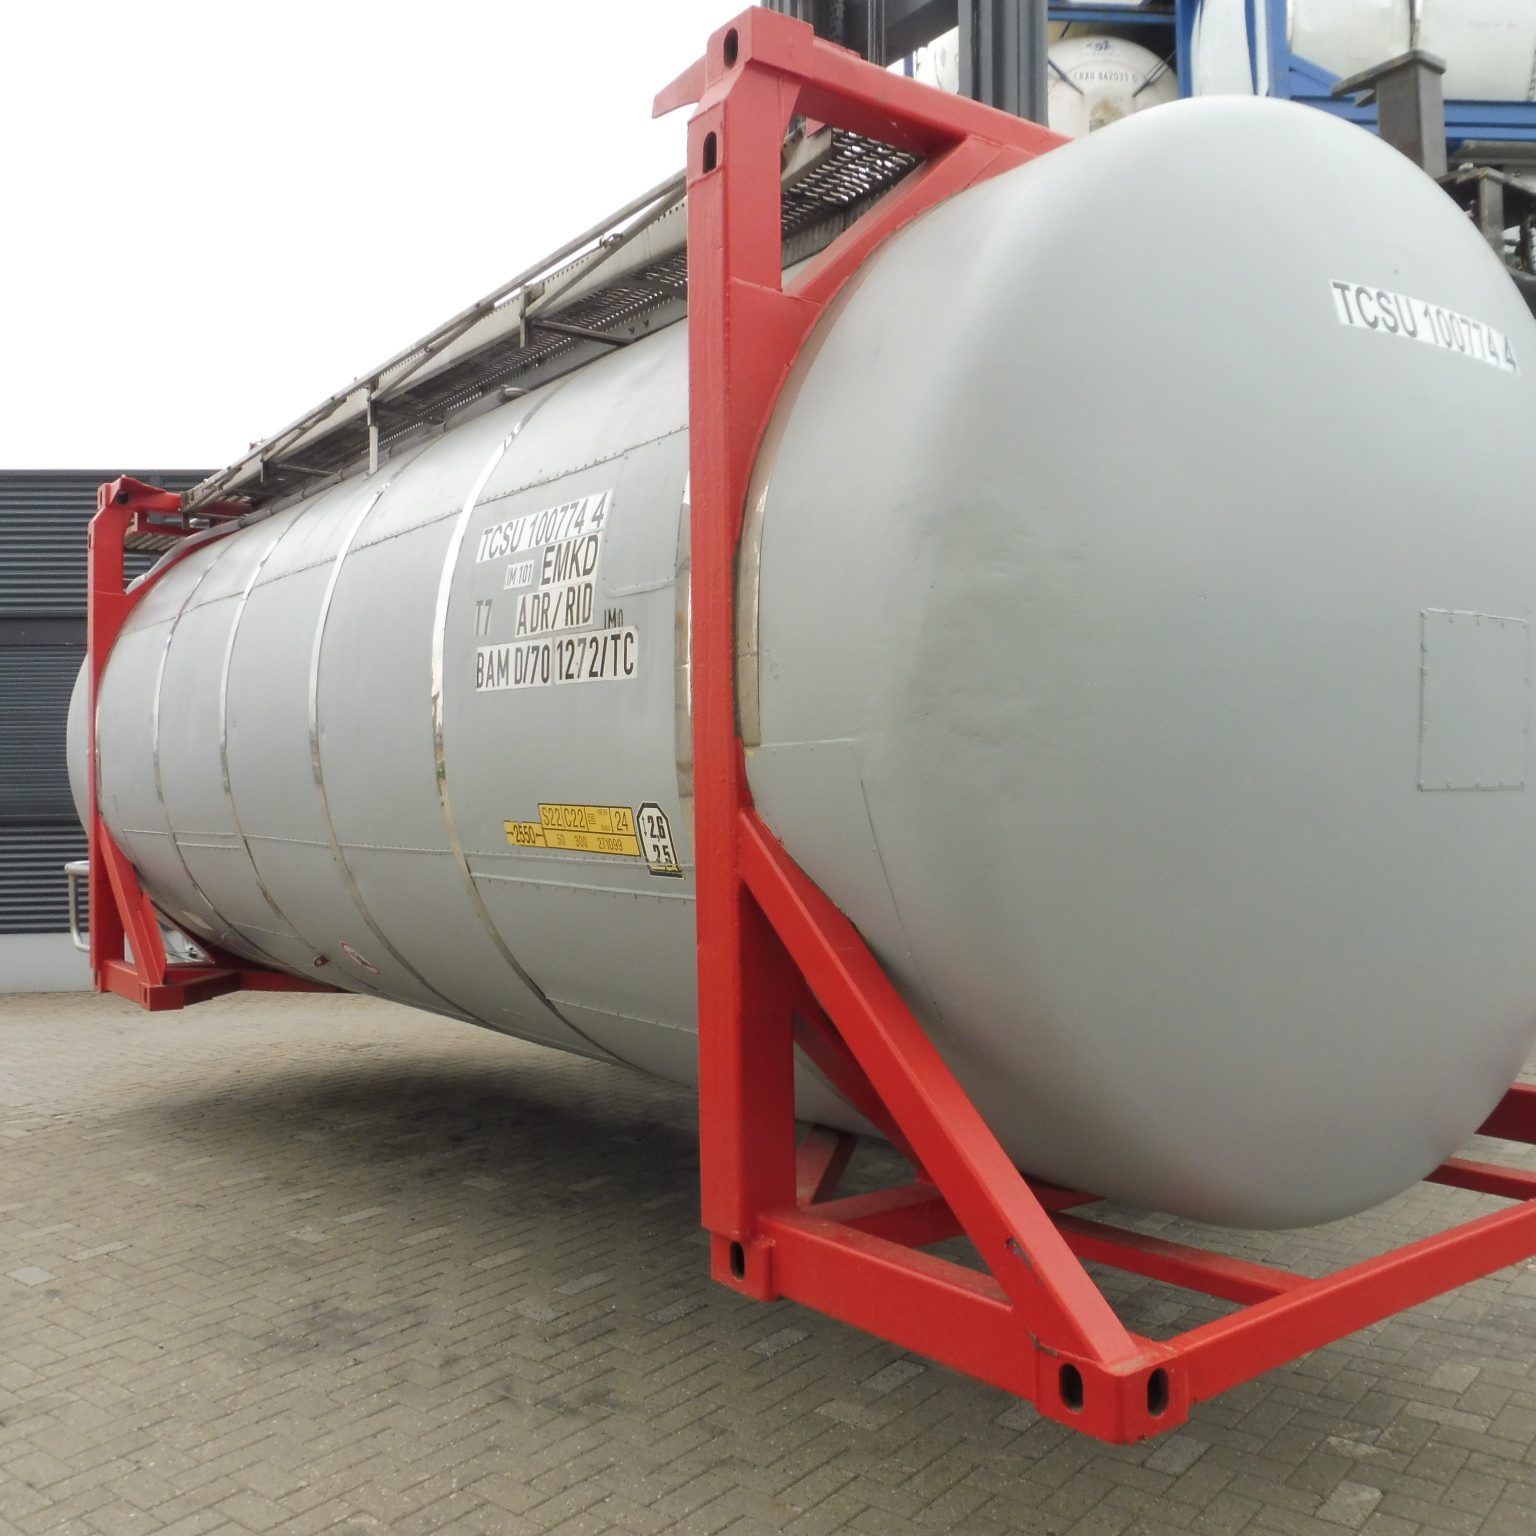 35000 liters T7 Swap tank container